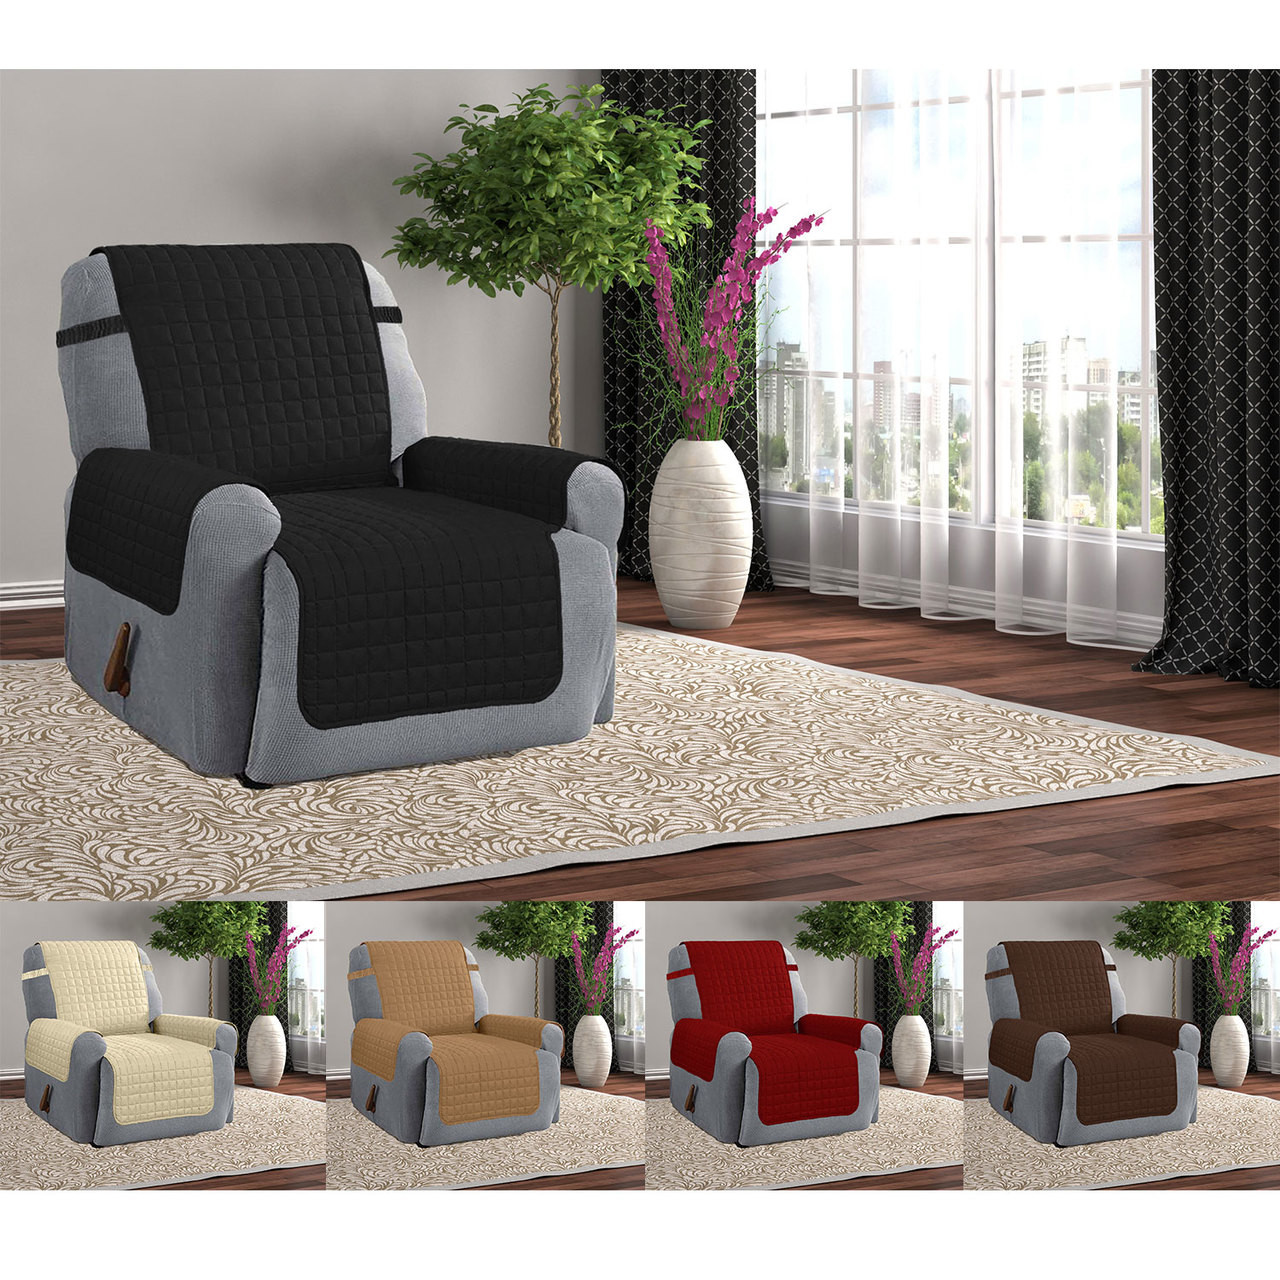 Really Cheap Furniture For Sale: Quilted Microfiber Furniture Recliner Pet Protector Cover